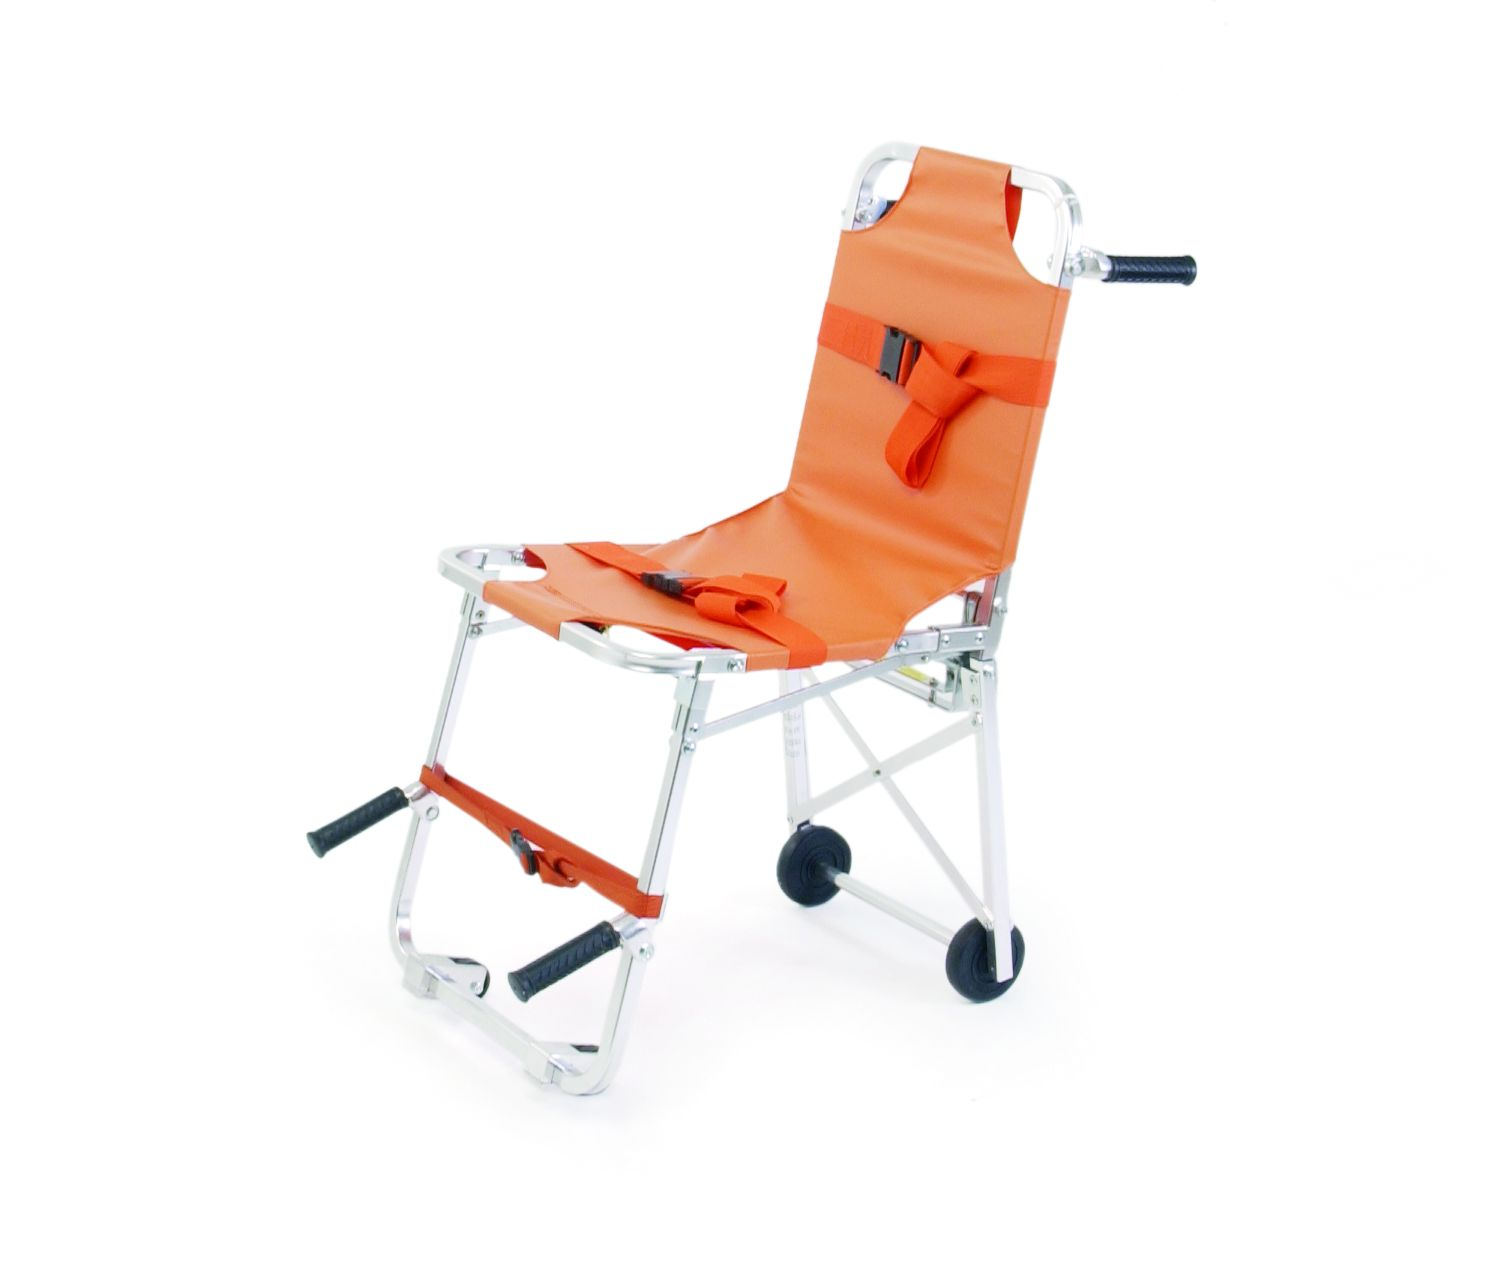 Stretcher Chair Model 42 Stair Chair With Vinyl Cover Ferno Canada